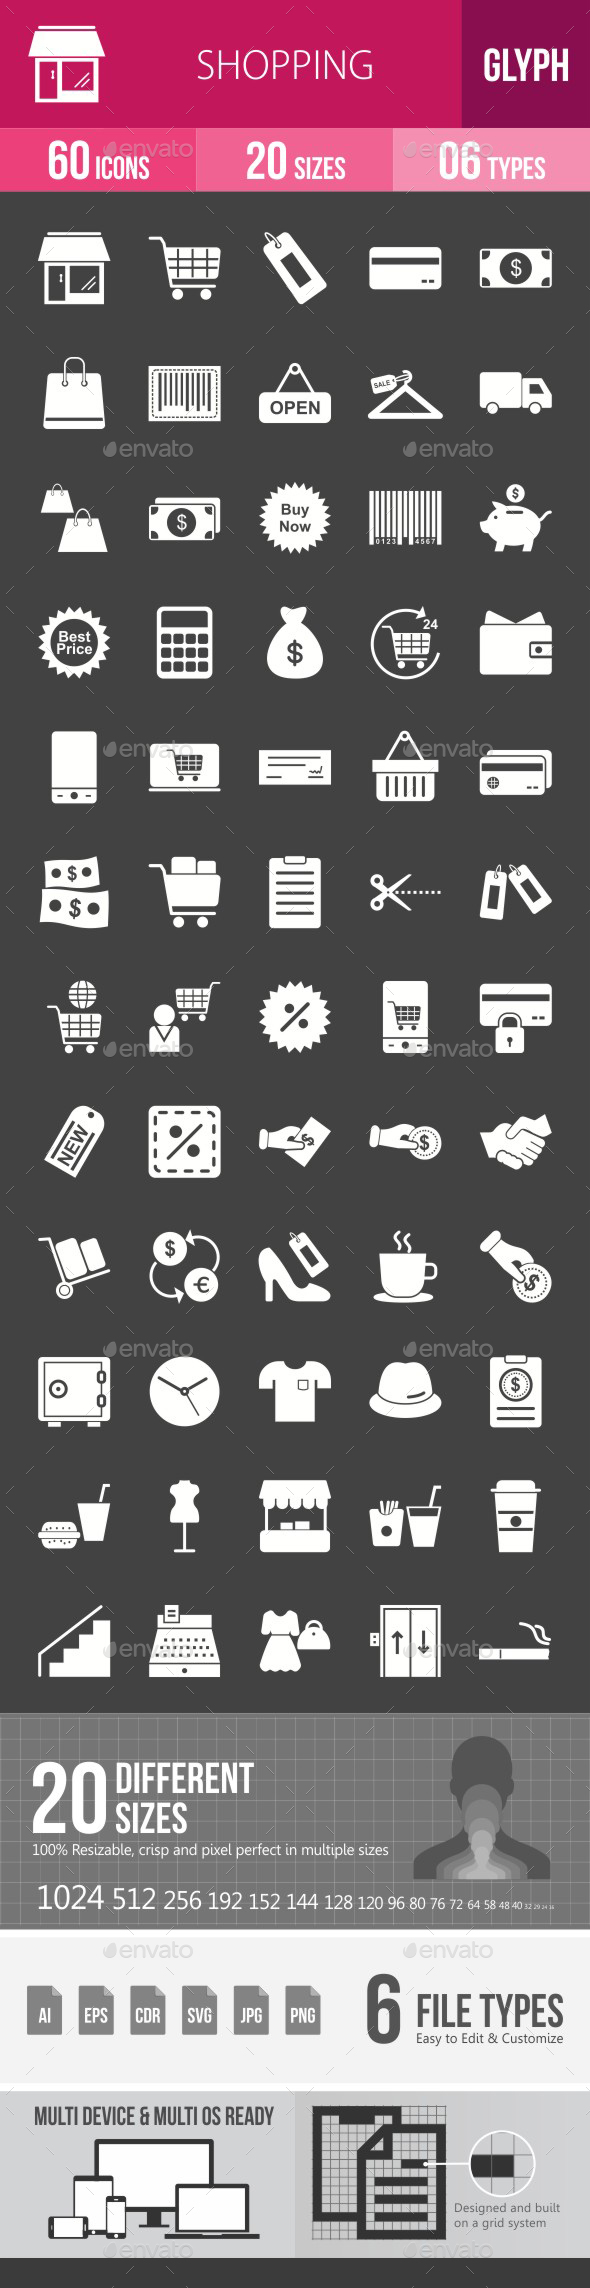 Shopping Glyph Inverted Icons - Icons